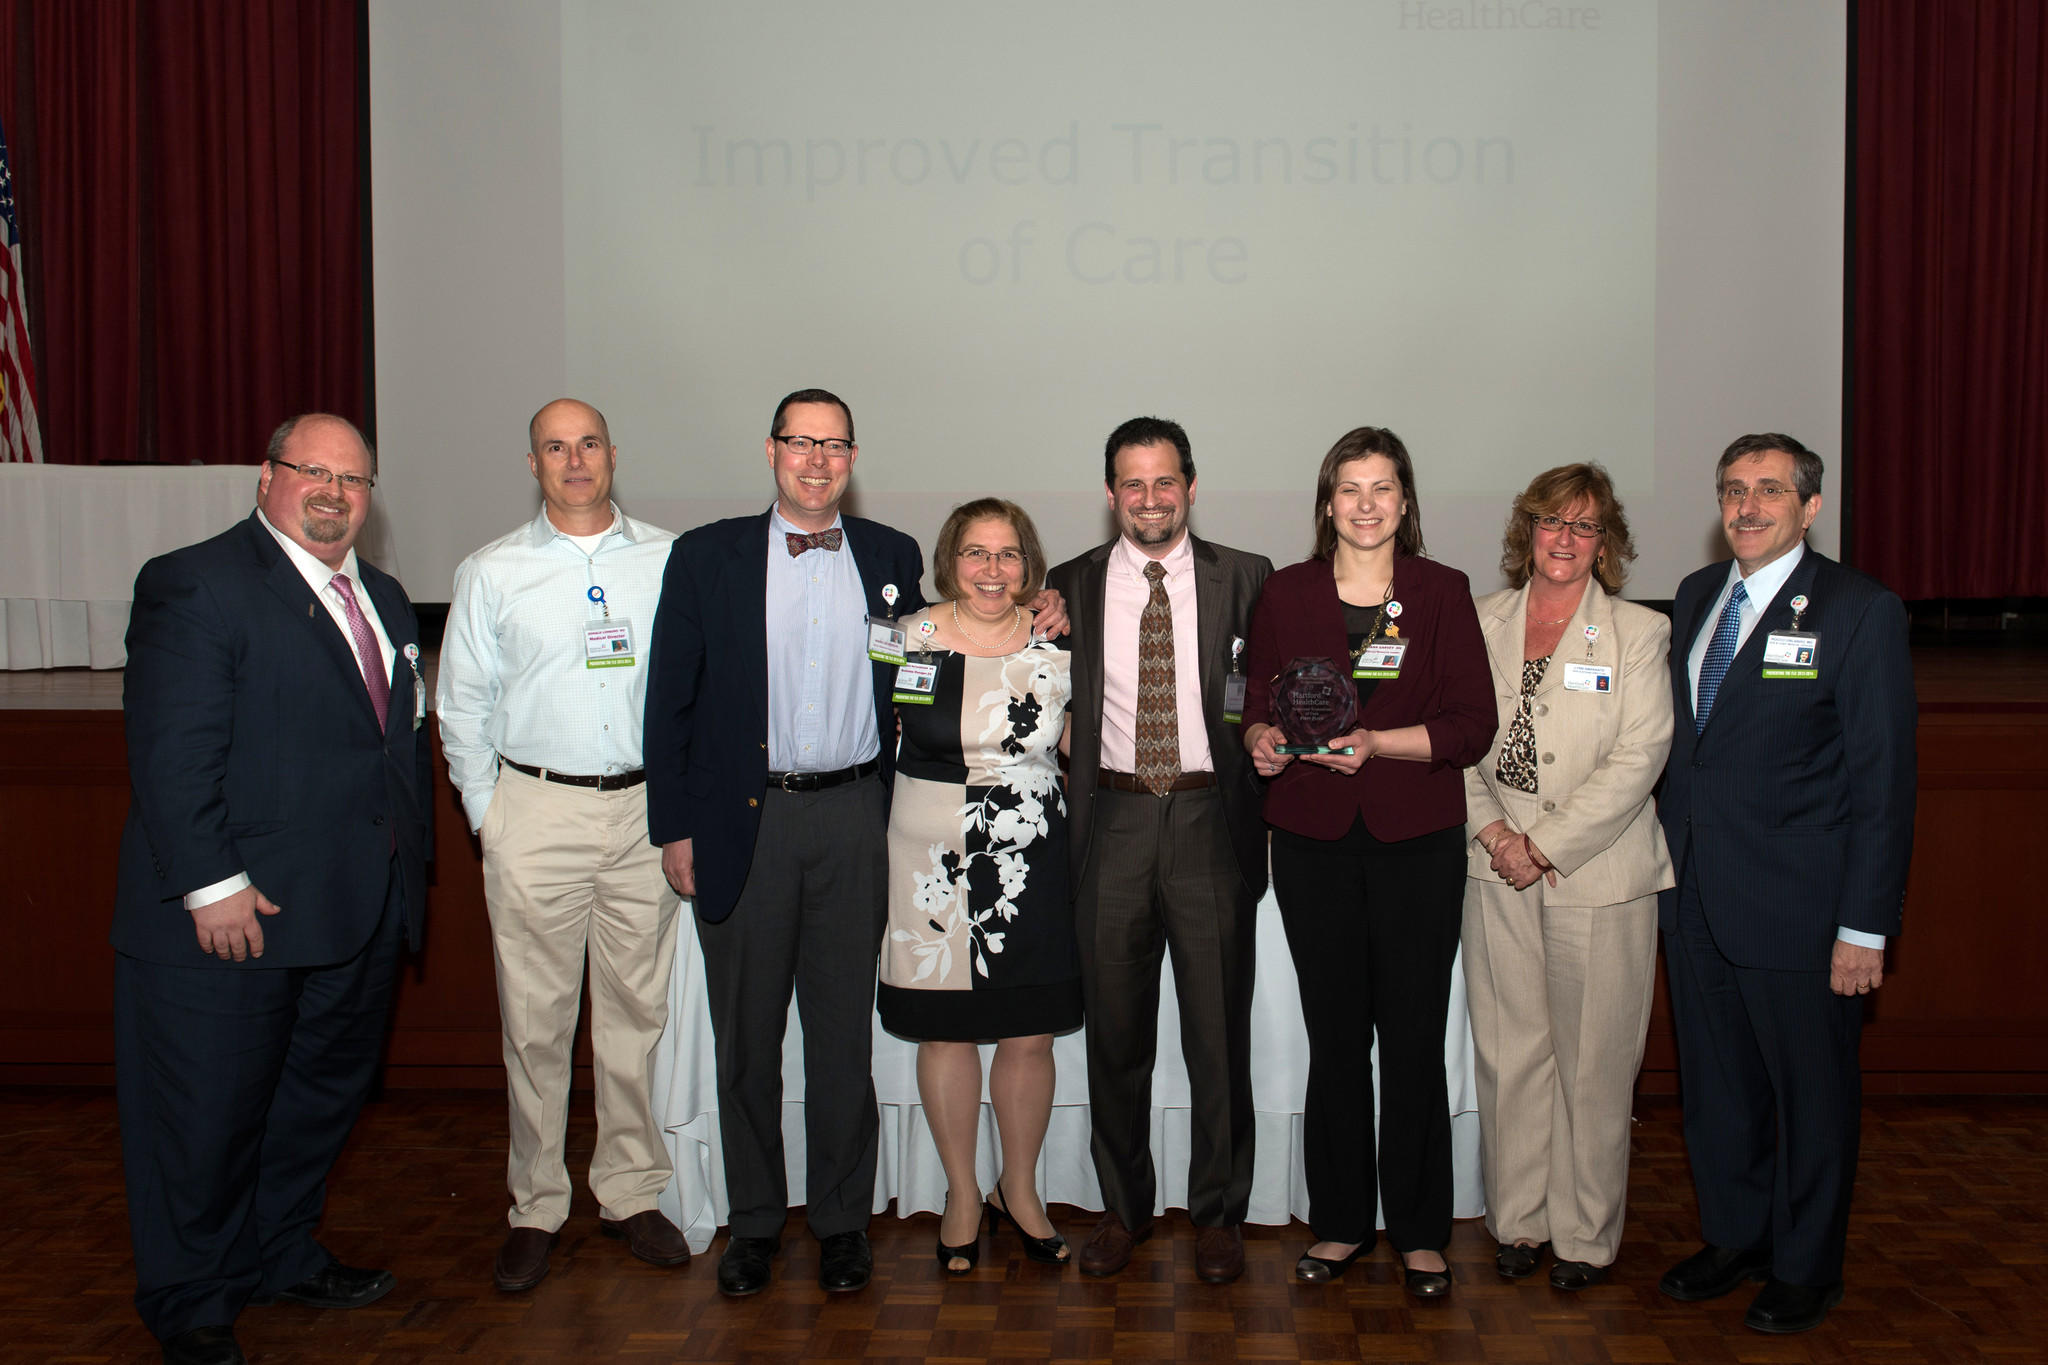 From left to right: David Fichandler, Hartford HealthCare patient experience director; Dr. Donald Lombino, Emergency Department medical director; Marc Levesque, CCSHS senior resource case manager; Susan McGaughan, RN, MBA, NE-BC, Emergency Department business manager; Dr. Alan Weiner, Emergency Department associate director; Dana Garvey, RN; Lynn Amarante, former assistant vice president of emergency services; and Dr. Rocco Orlando, Hartford HealthCare chief medical officer.